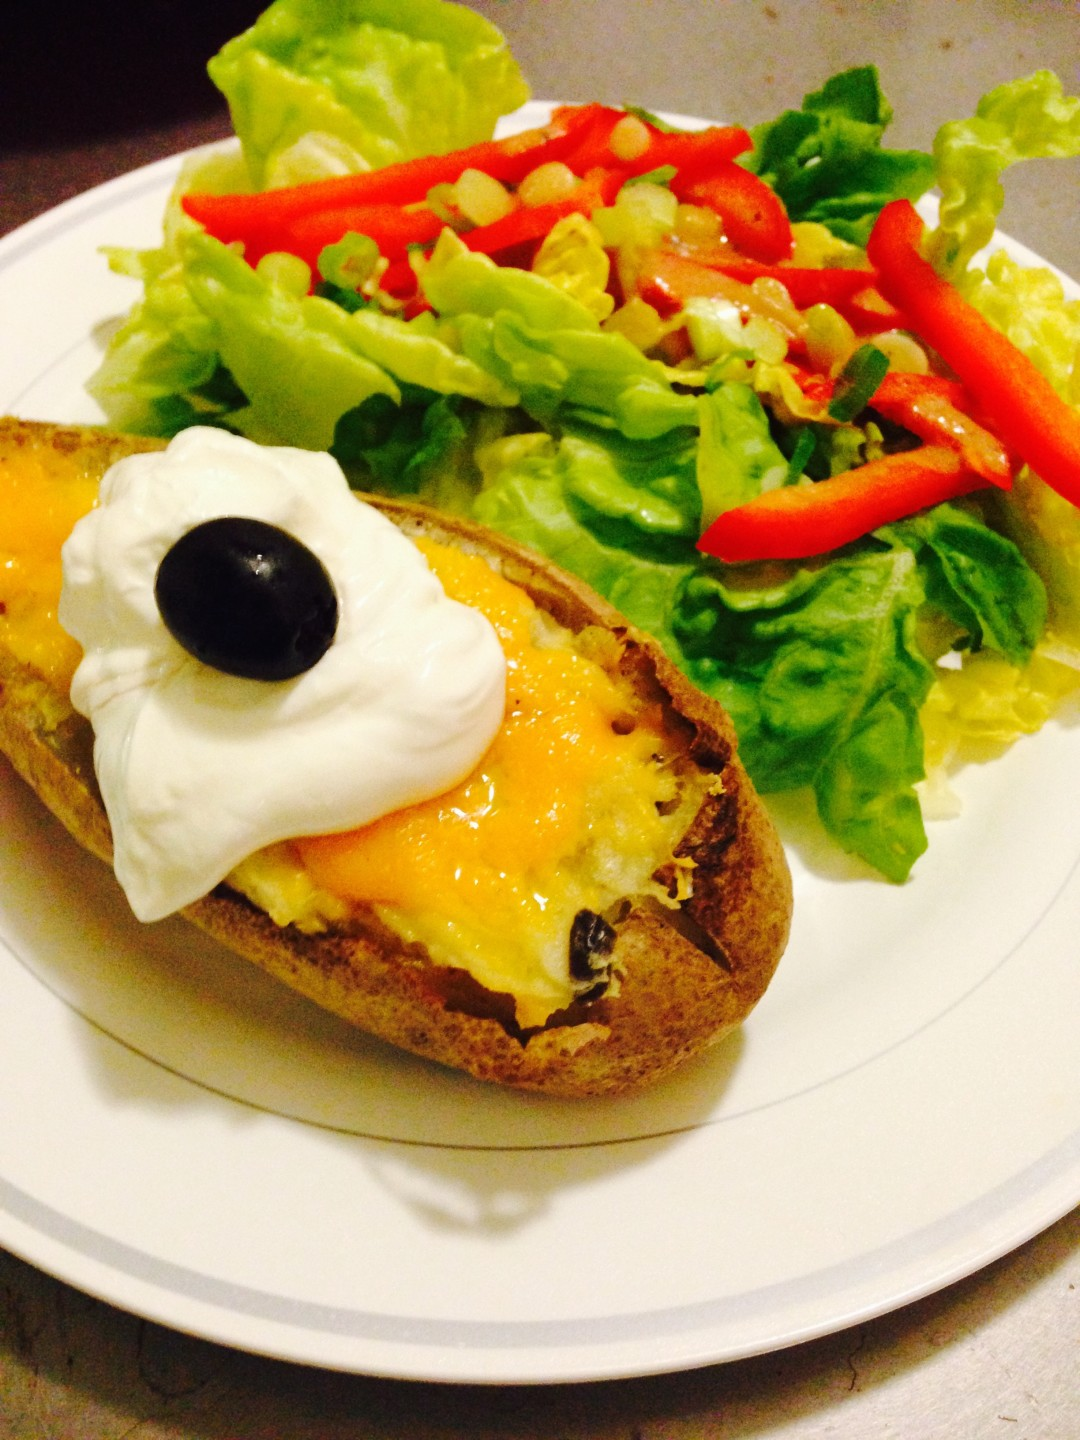 Twice Baked Potatoes with Chili and Cheese - Red Hot and Hungry